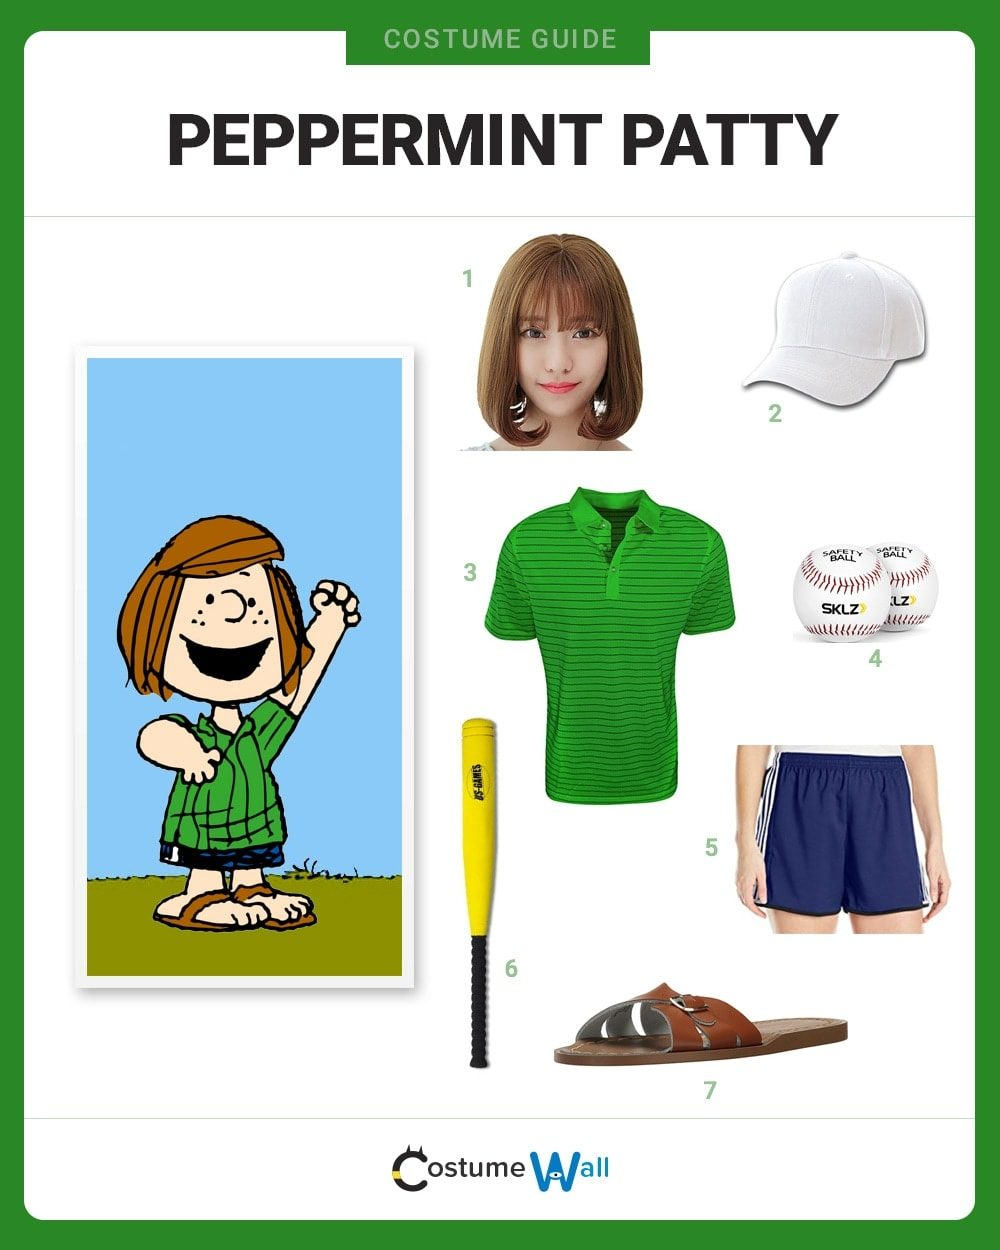 Peppermint Patty Costume Guide